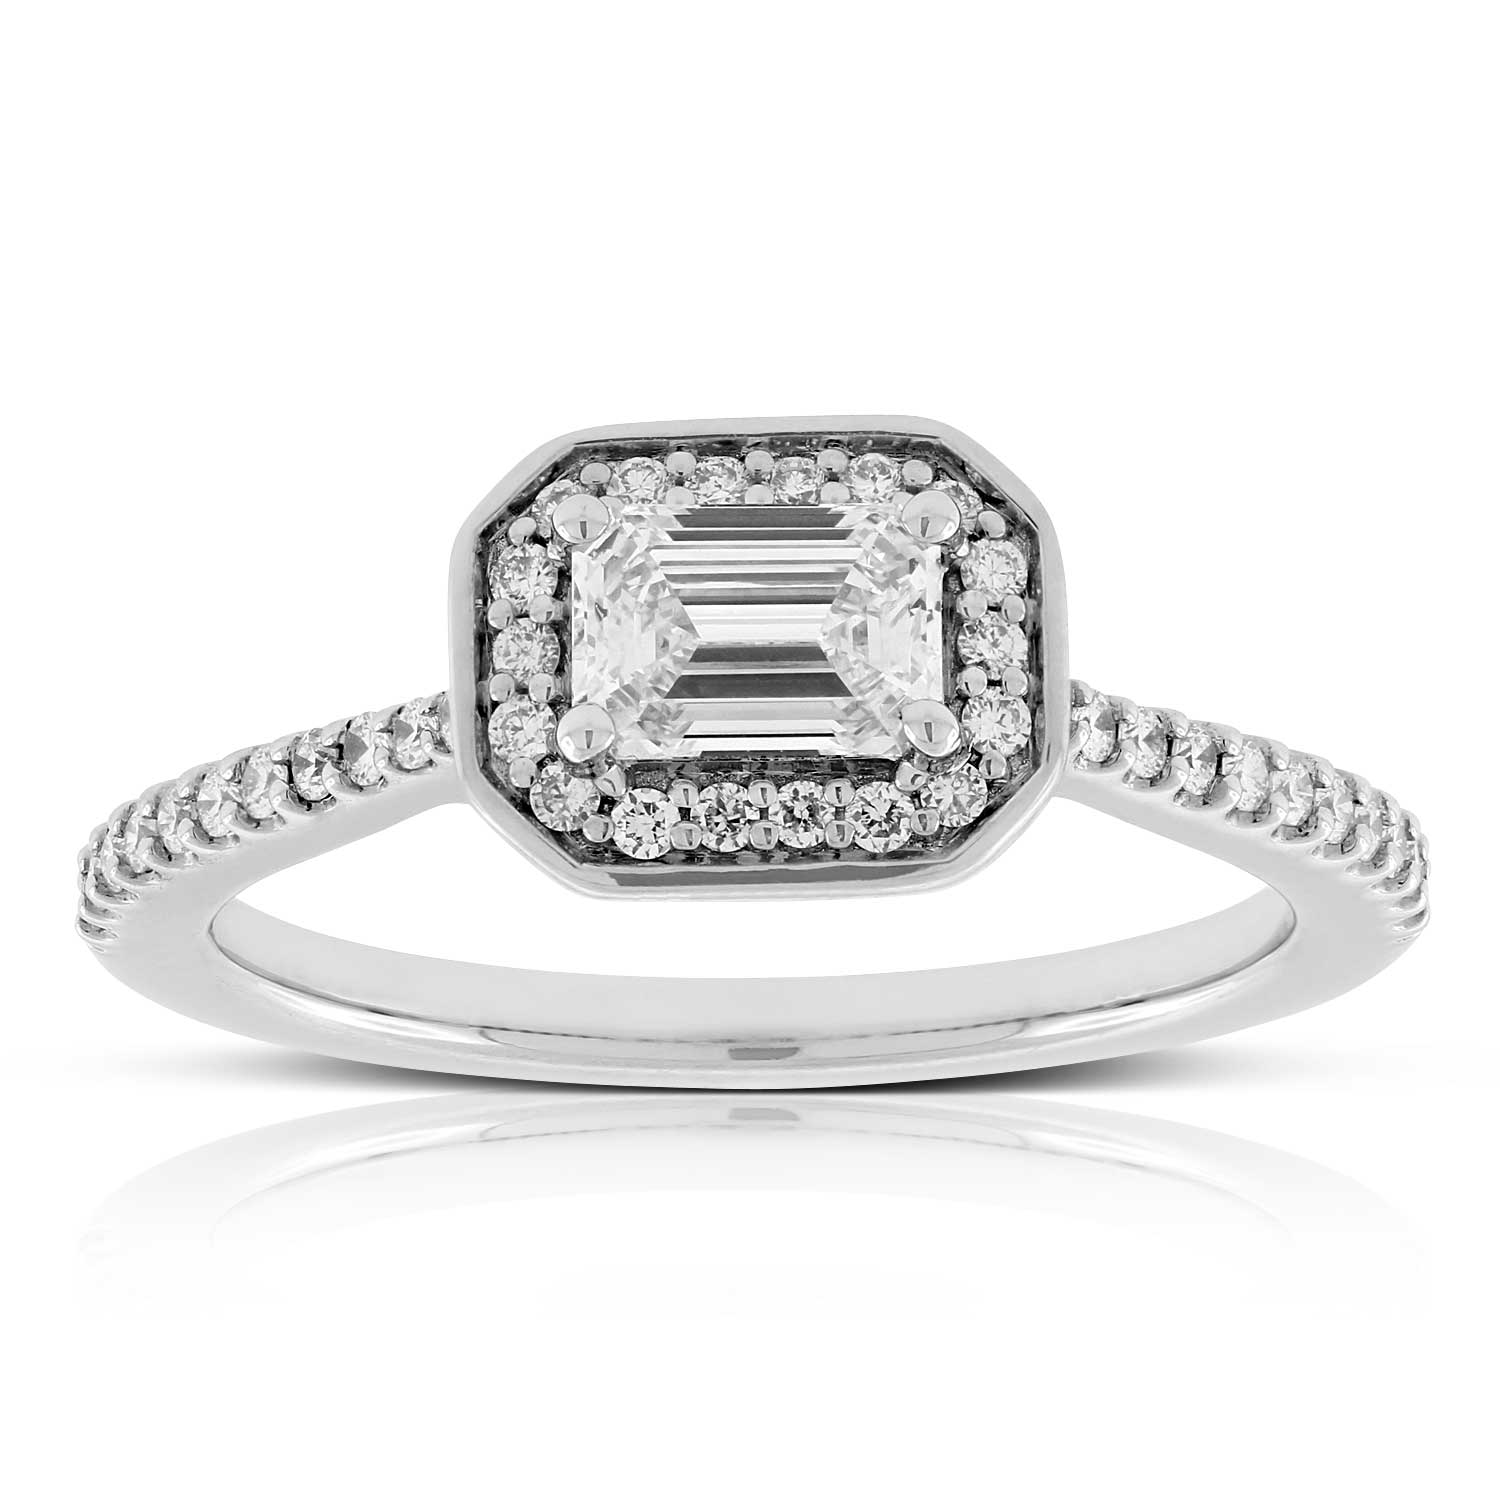 a halo diamond stone rings emerald e engagement ctw gold in cut white ring